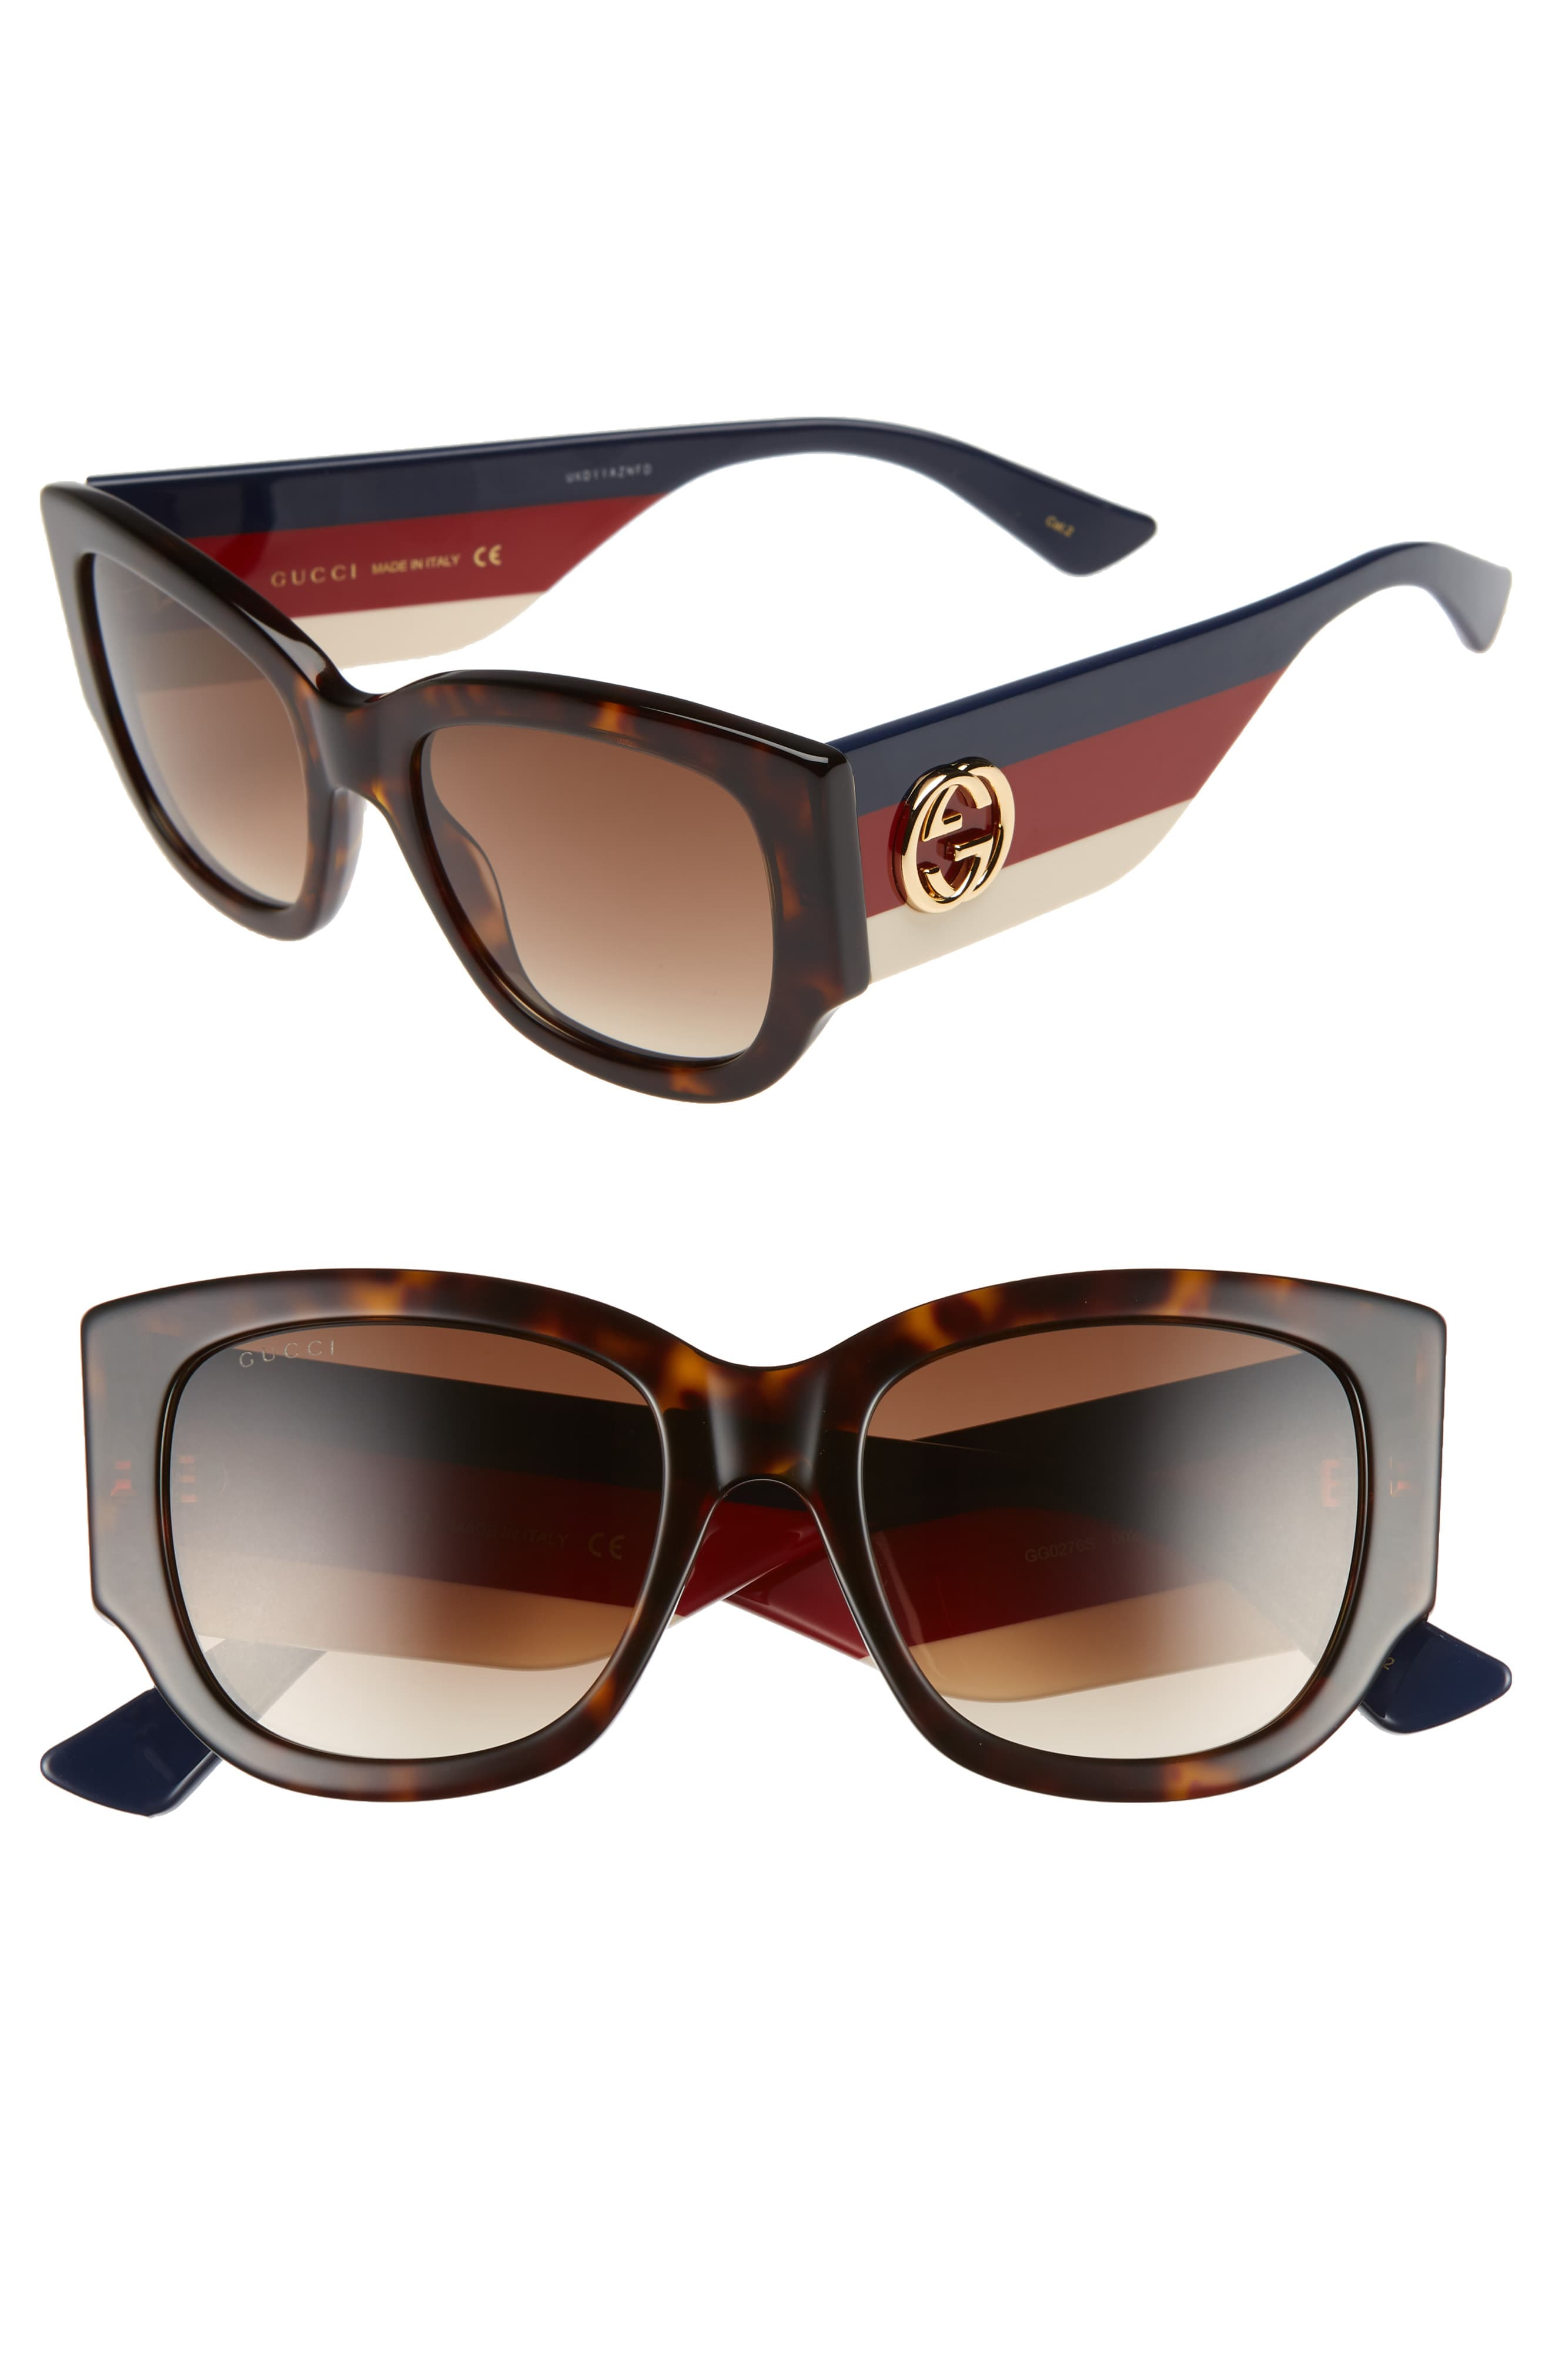 3c569ebd3eff4 Free shipping and returns on Gucci 53mm Cat Eye Sunglasses at  Nordstrom.com. Bold stripes and logo medallion hardware stand out at the  temples of ...